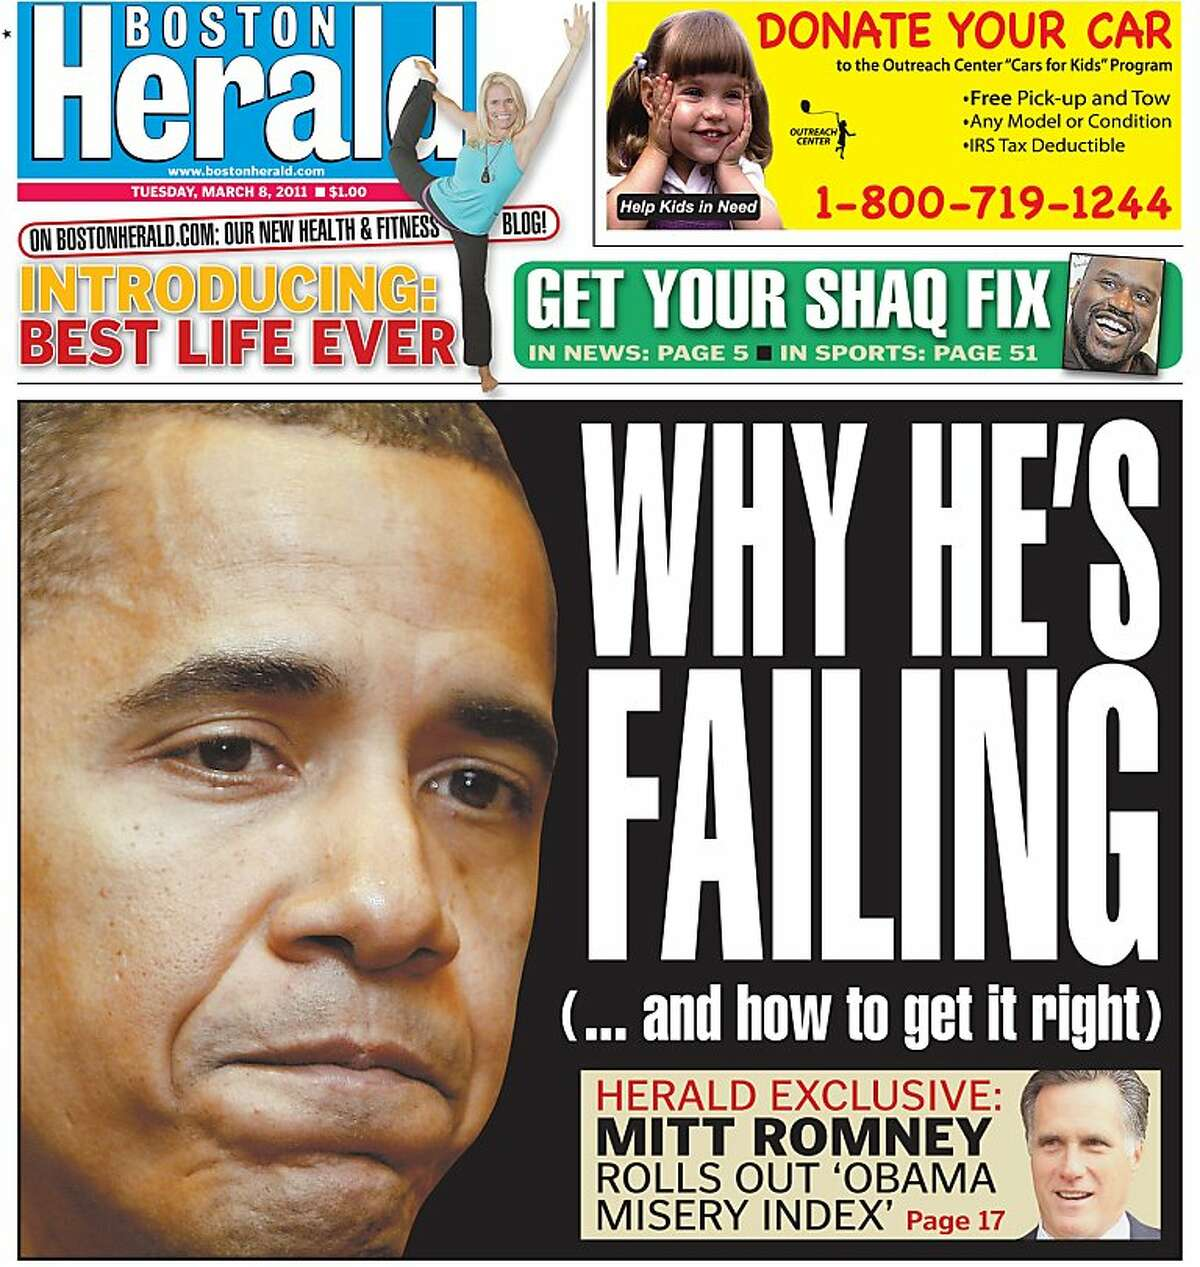 The March 8, 2011 front page of Boston Herald.